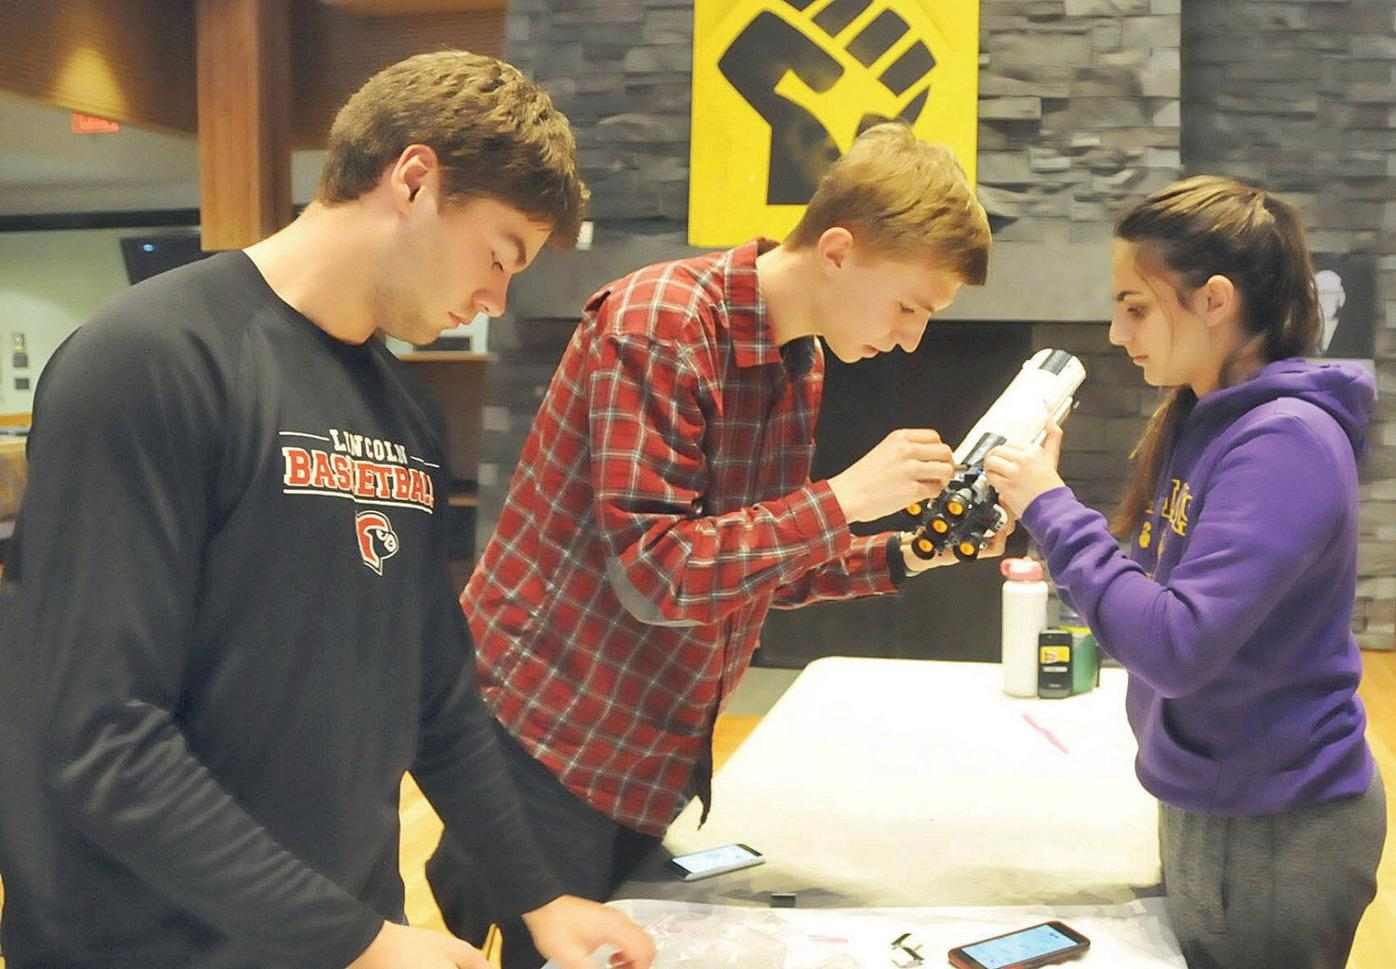 Having a blast(off): College, elementary school teams race to build Lego Saturn V